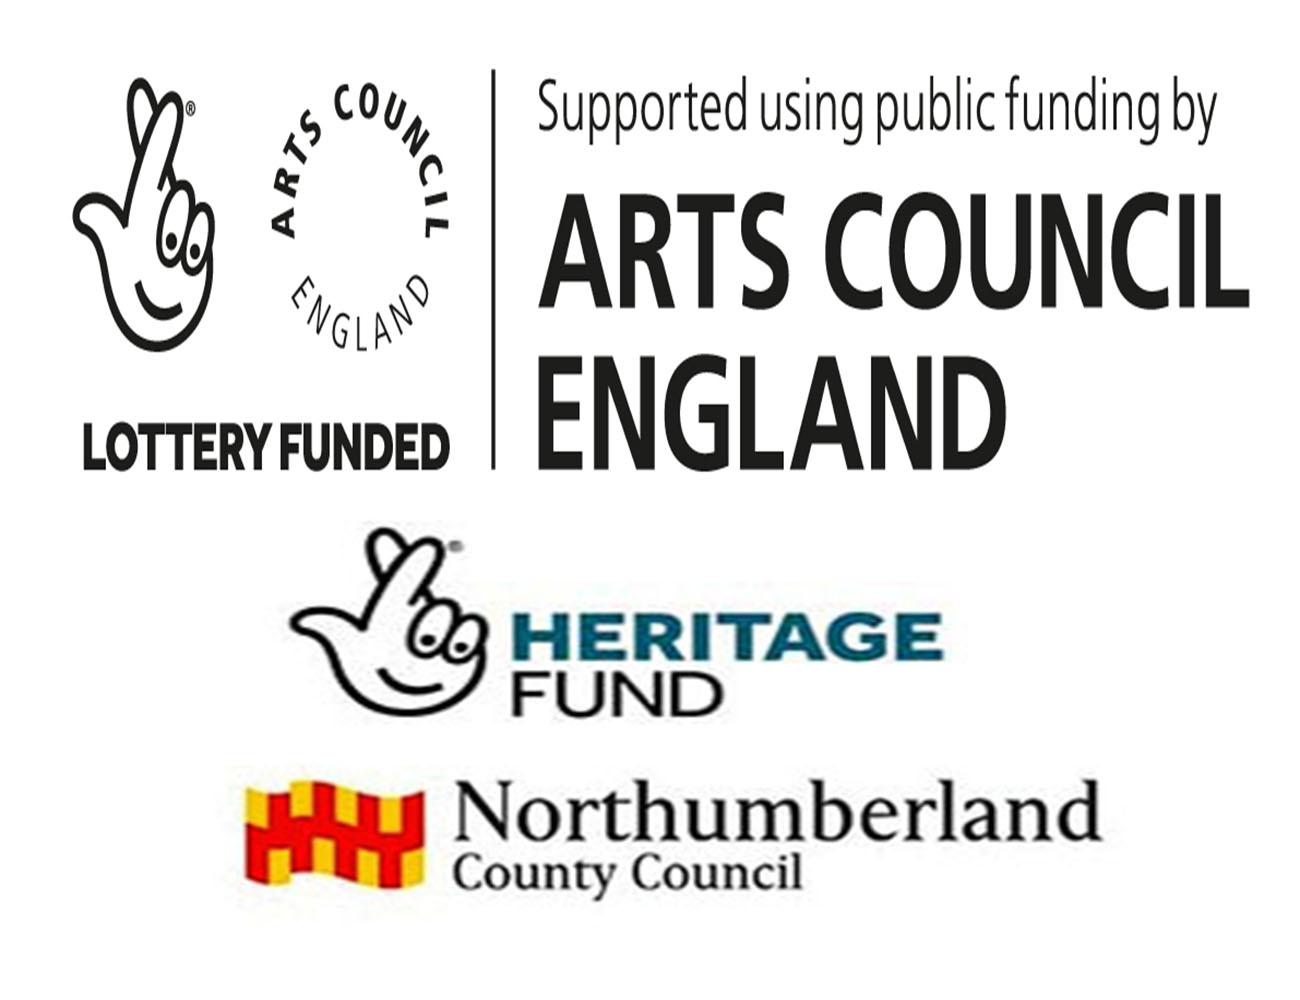 Lottery plus Arts council